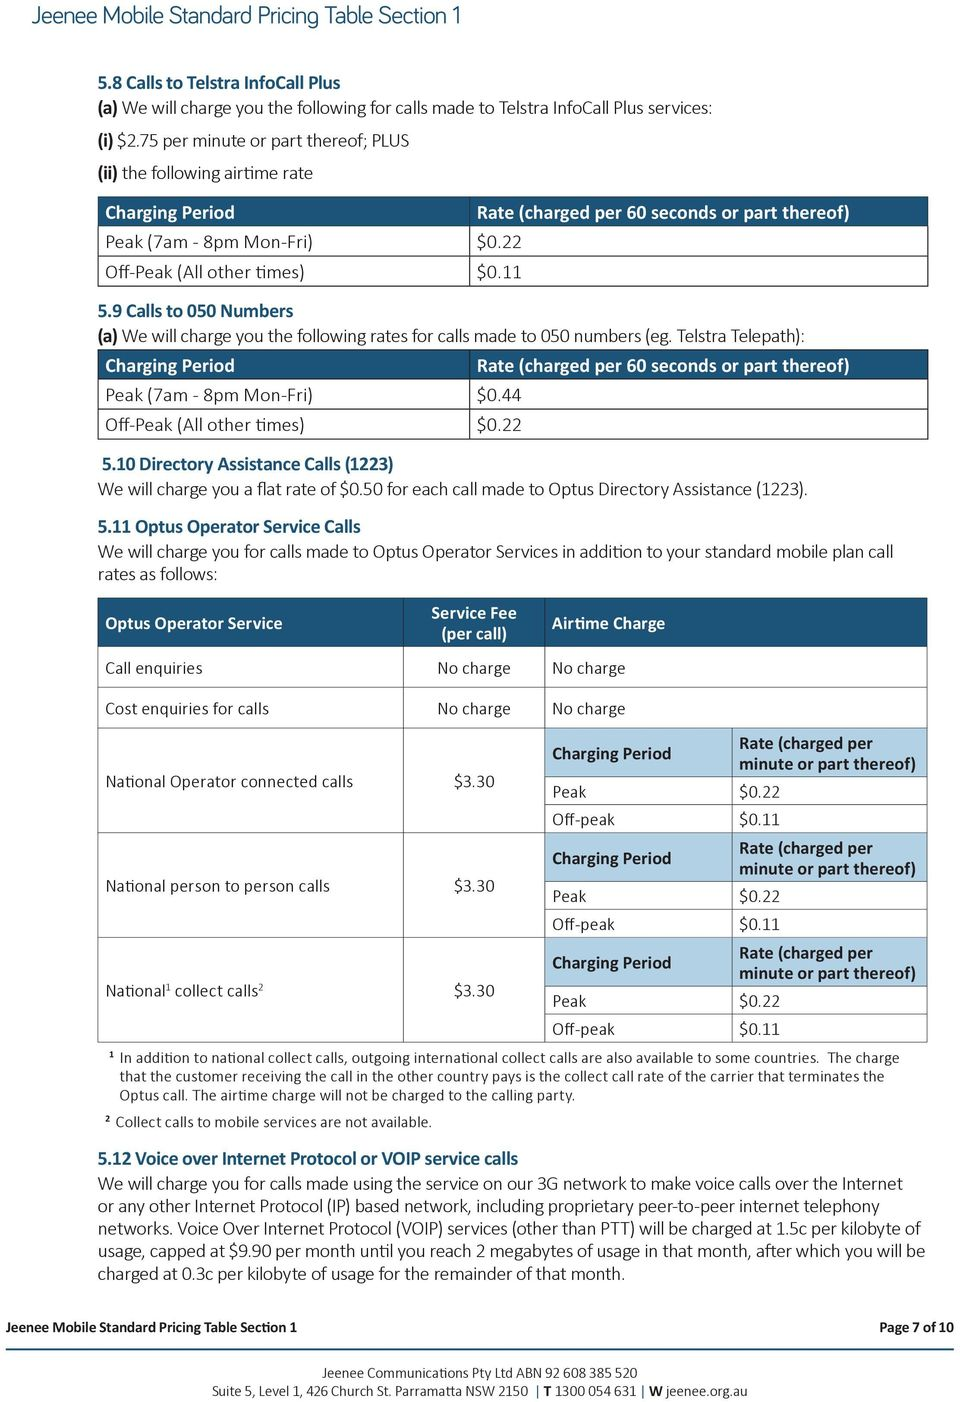 Jeenee Mobile Standard Pricing Table Section 1 General